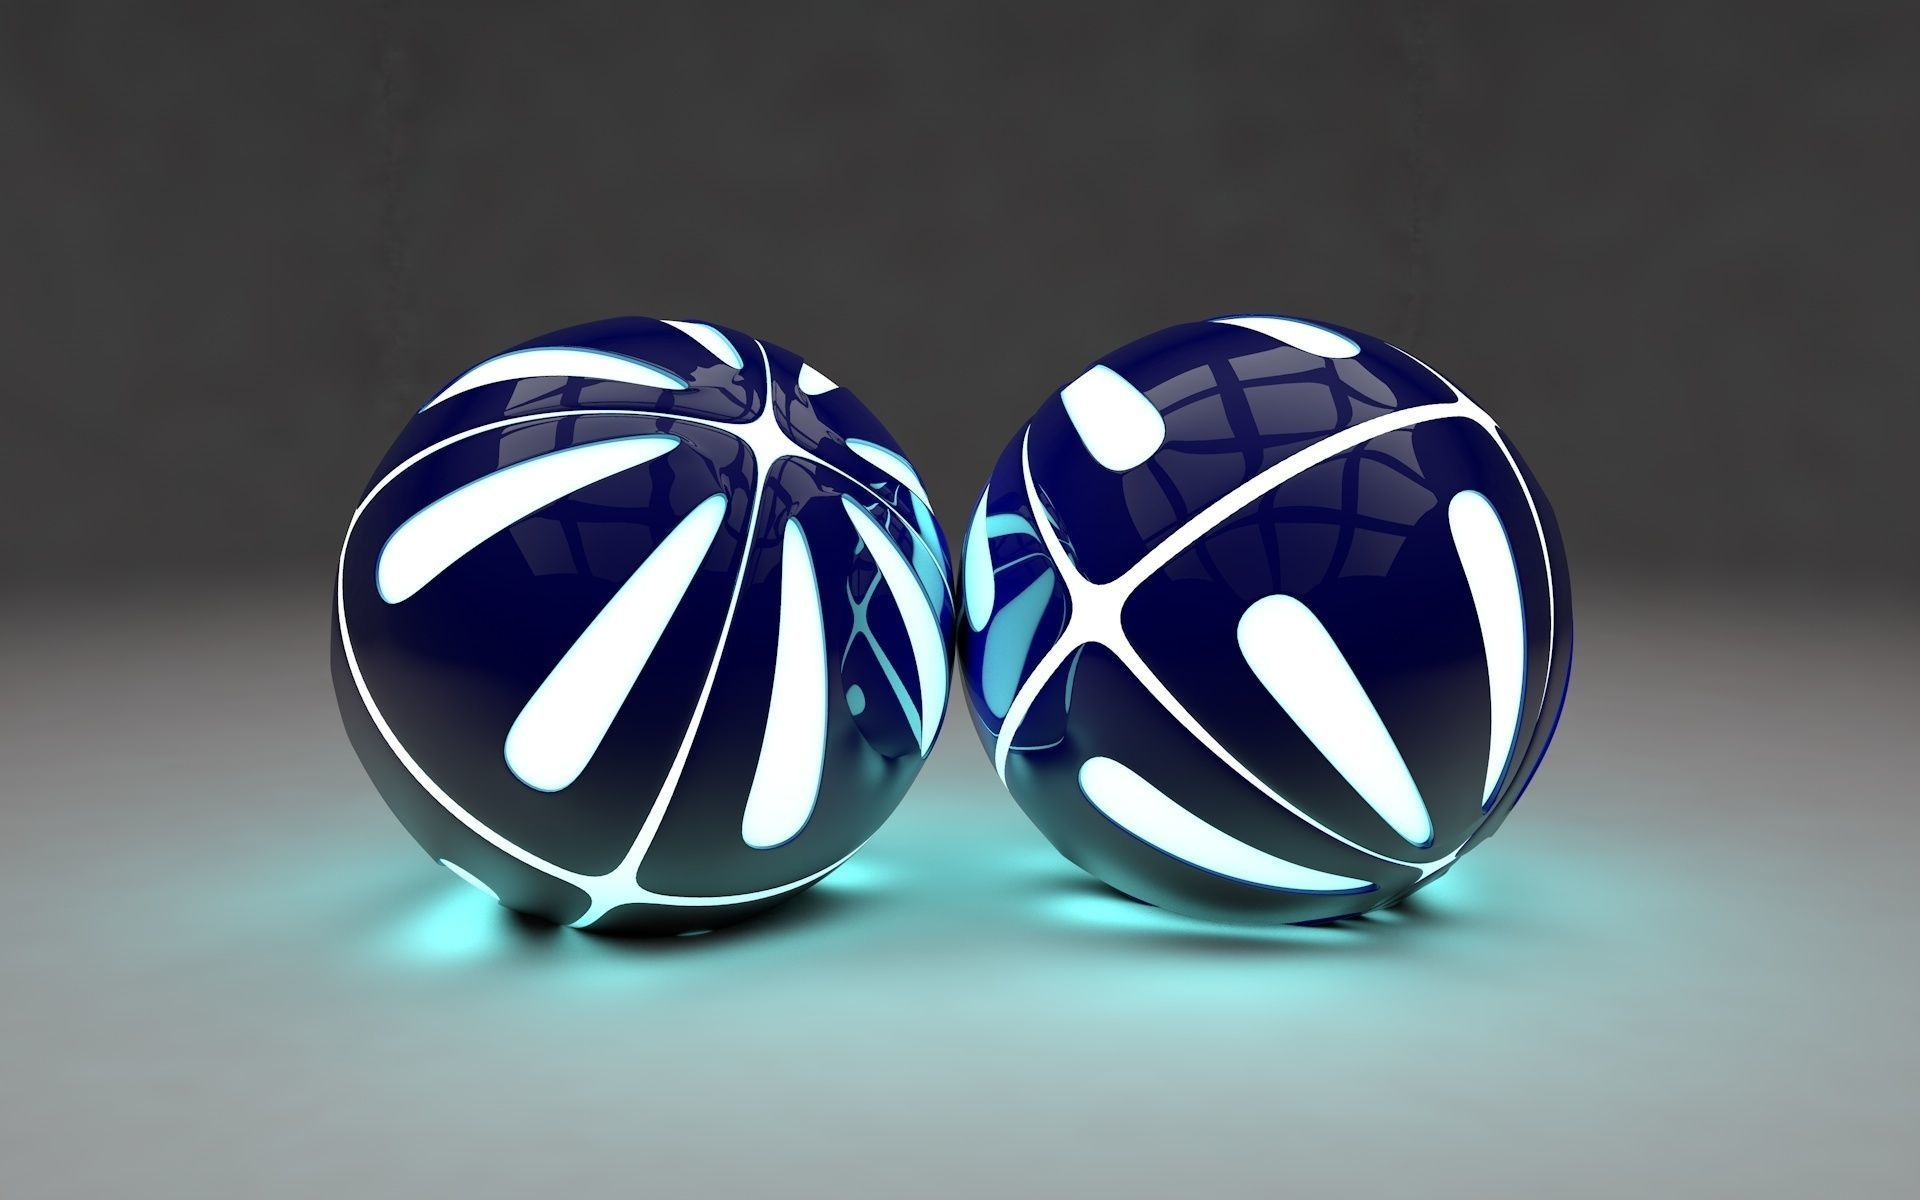 logo-animation-armored-ball-3d-model-animated-c4d